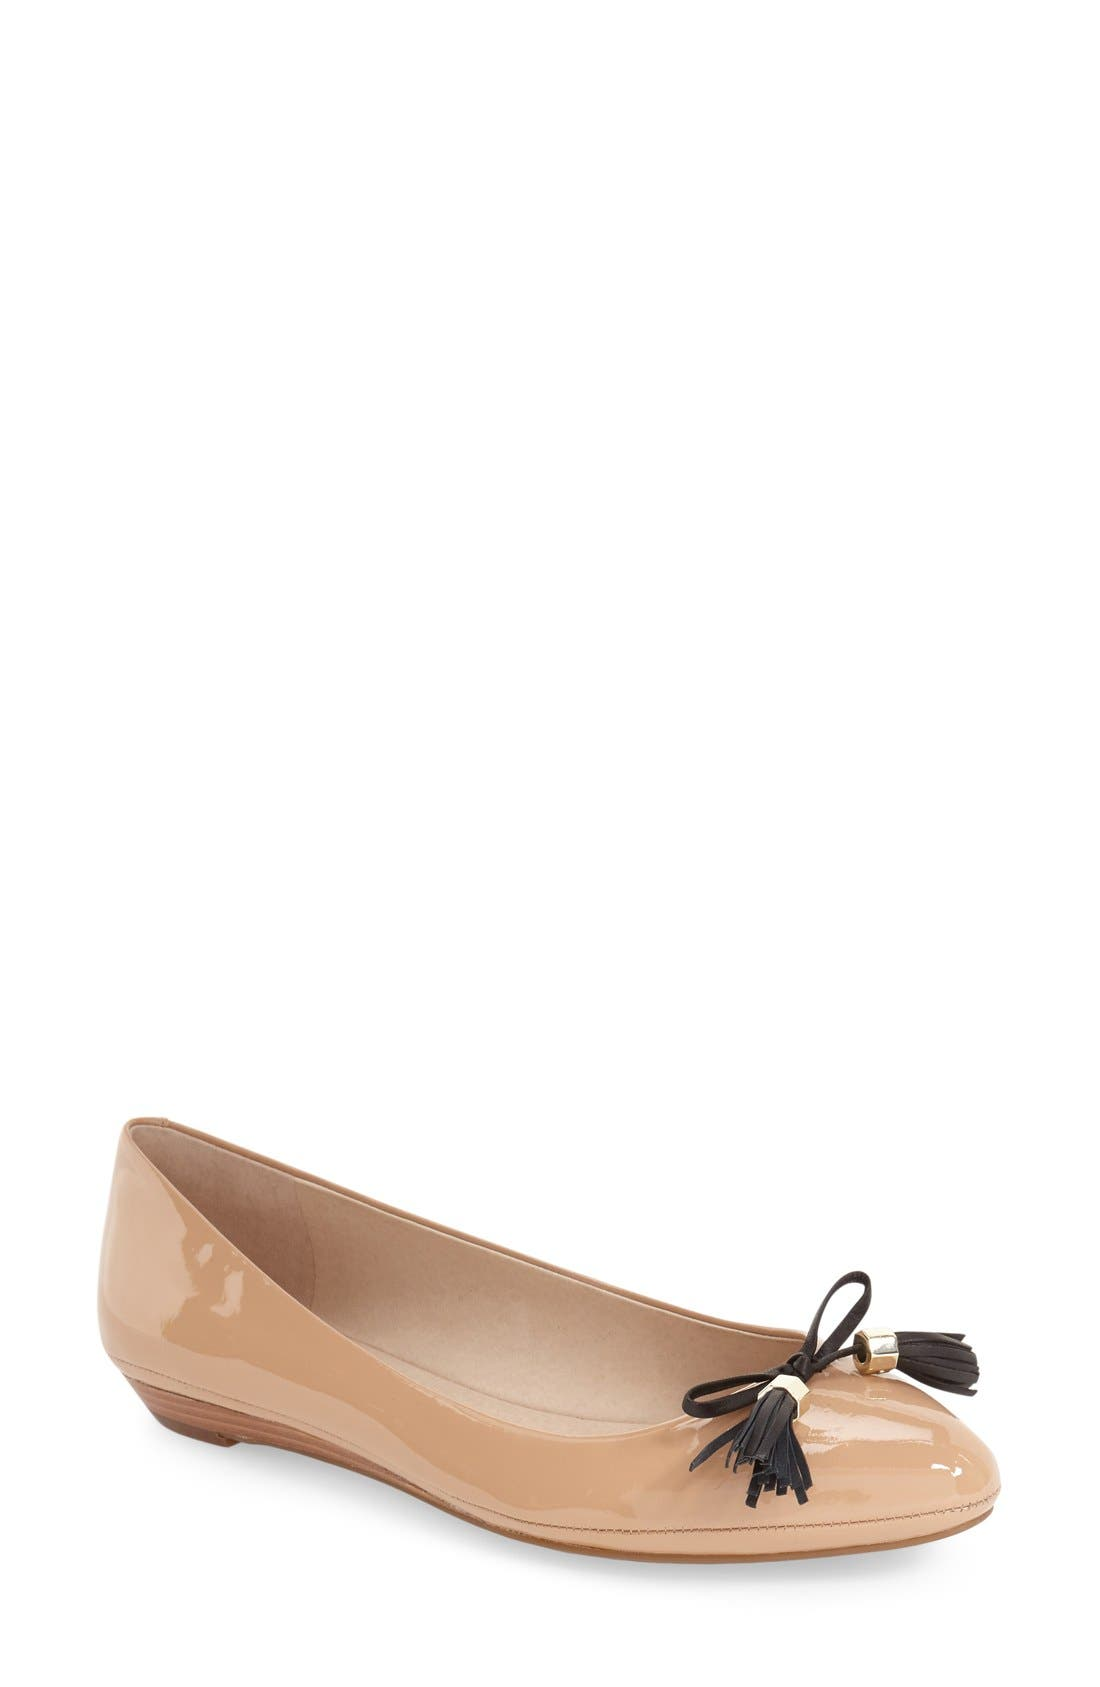 Main Image - Louise et Cie 'Aradella' Pointy Toe Flat (Women) (Nordstrom Exclusive)